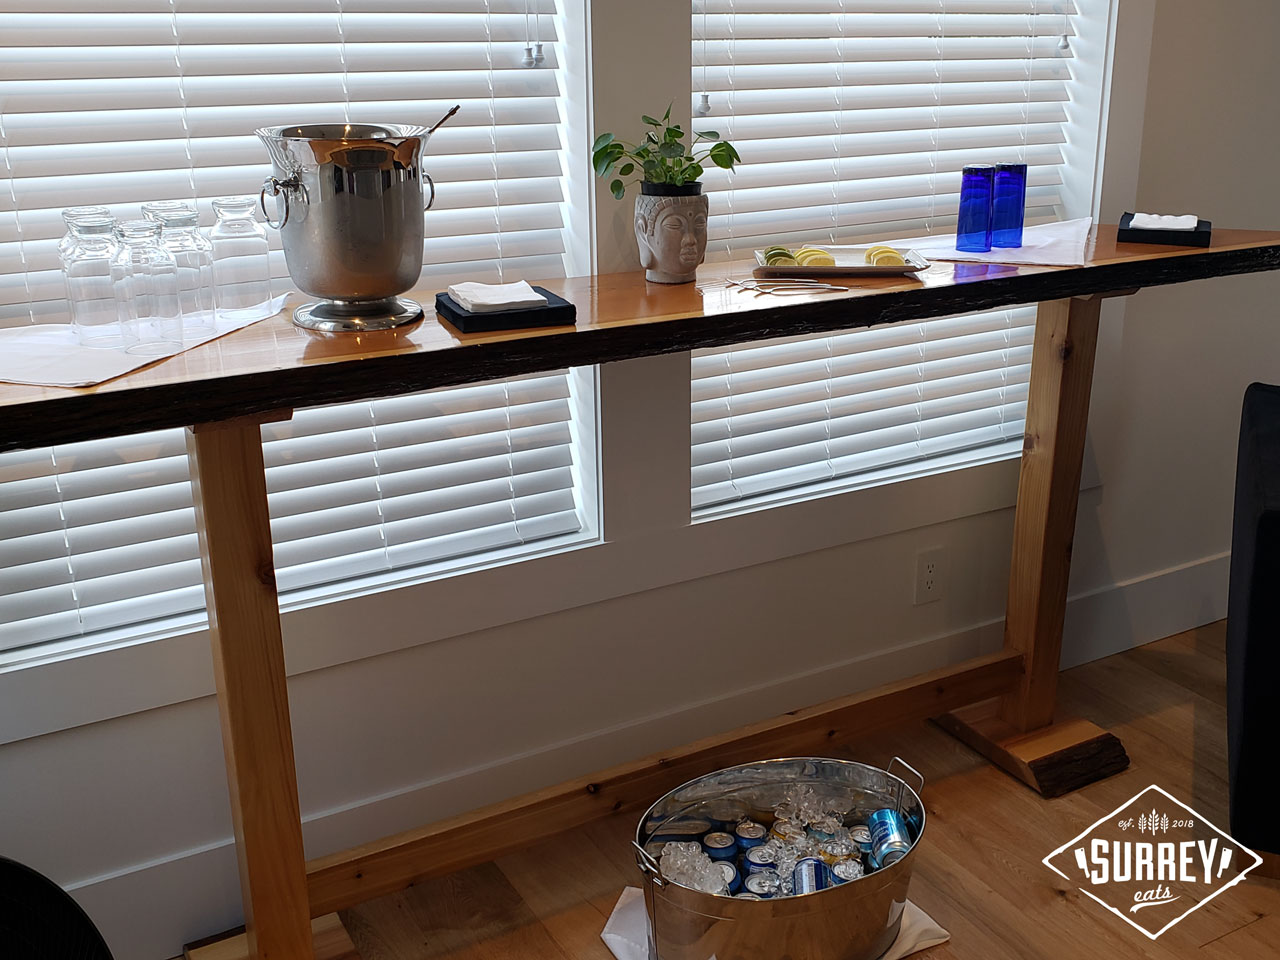 Free mixers in an ice bucket and a shelf with glasses, a plant, and lemons and limes